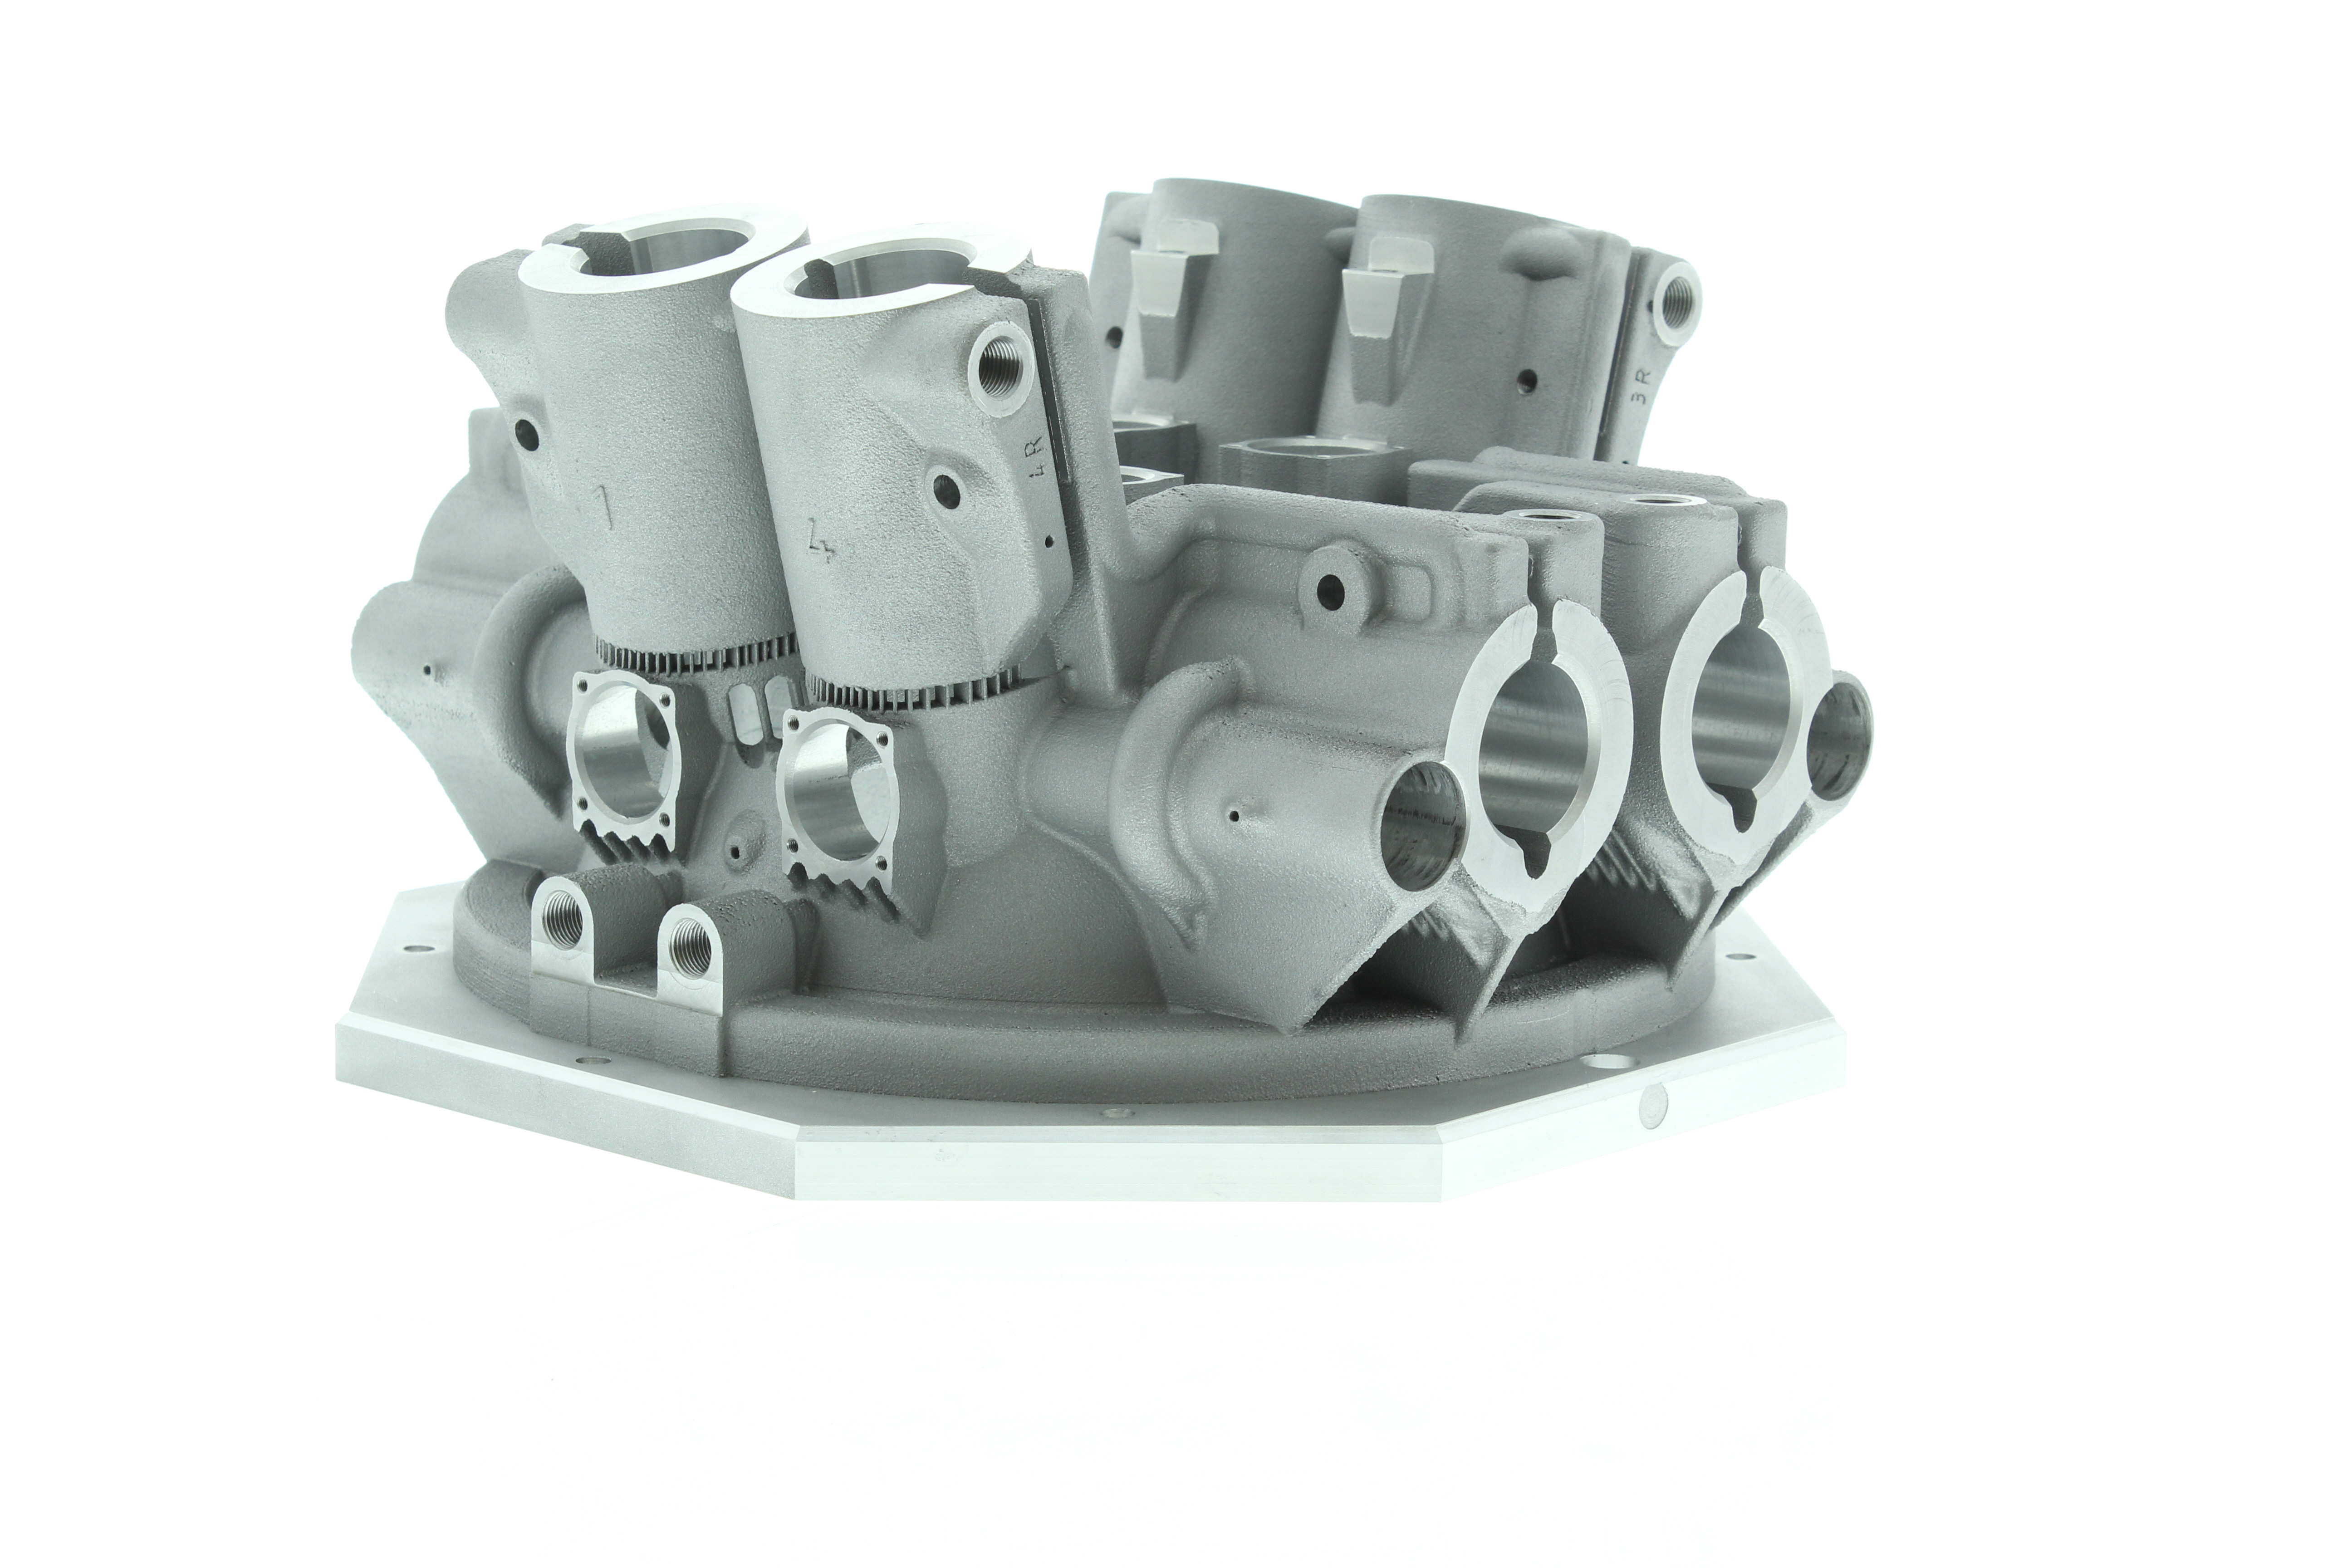 Additively manufactured galvo mounting for RenAM 500Q